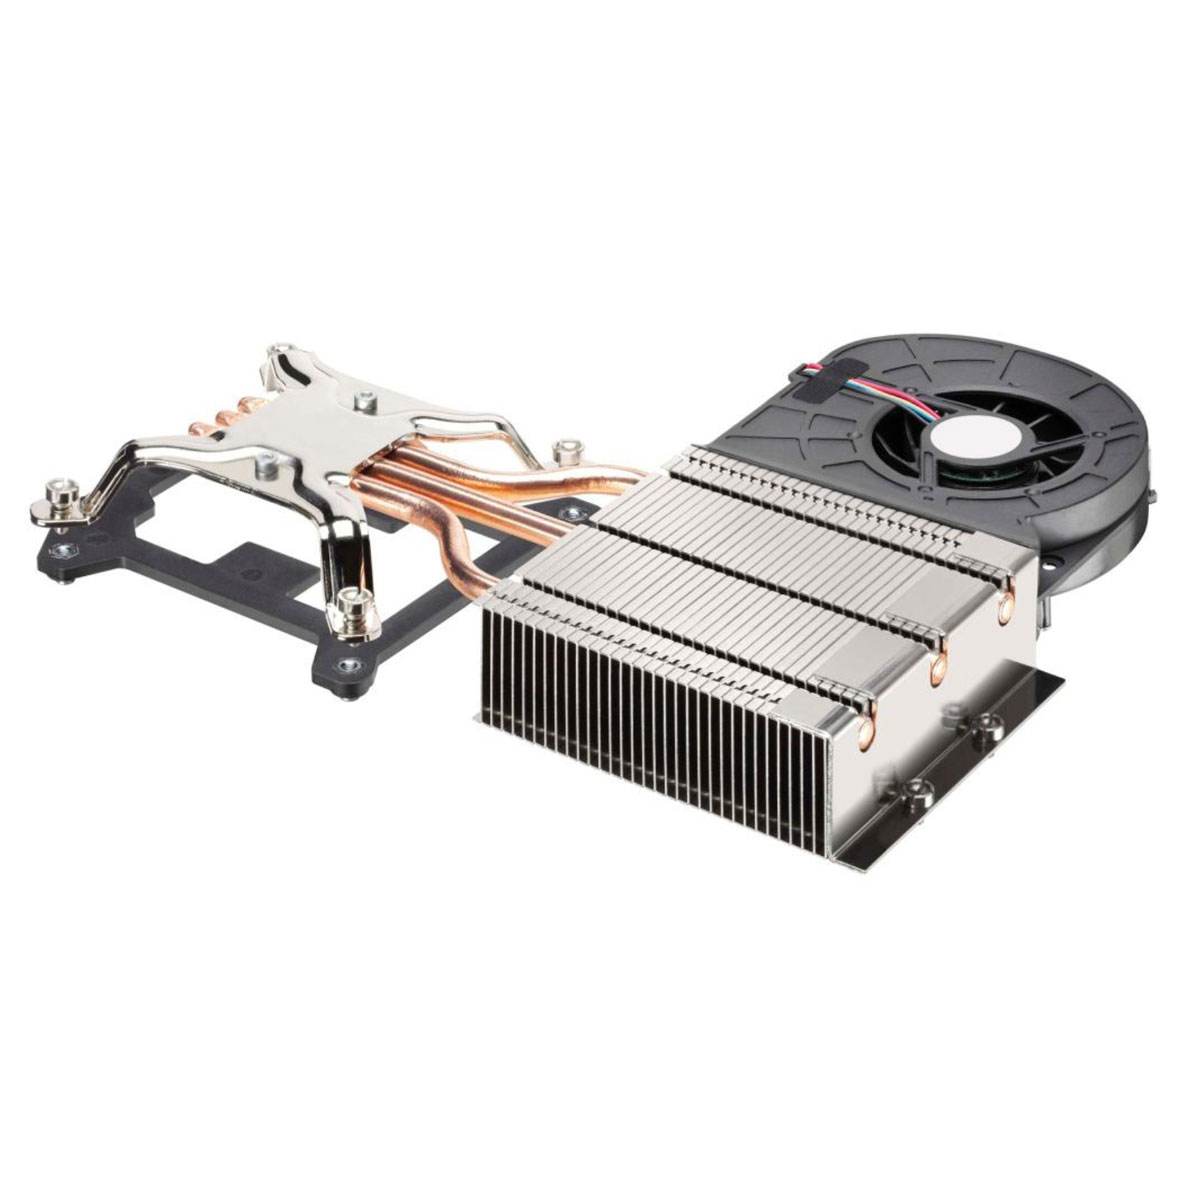 Ventilateur processeur Intel Thermal Solution HTS 1155LP Ventilateur Low Profile pour plateforme Thin Mini-ITX